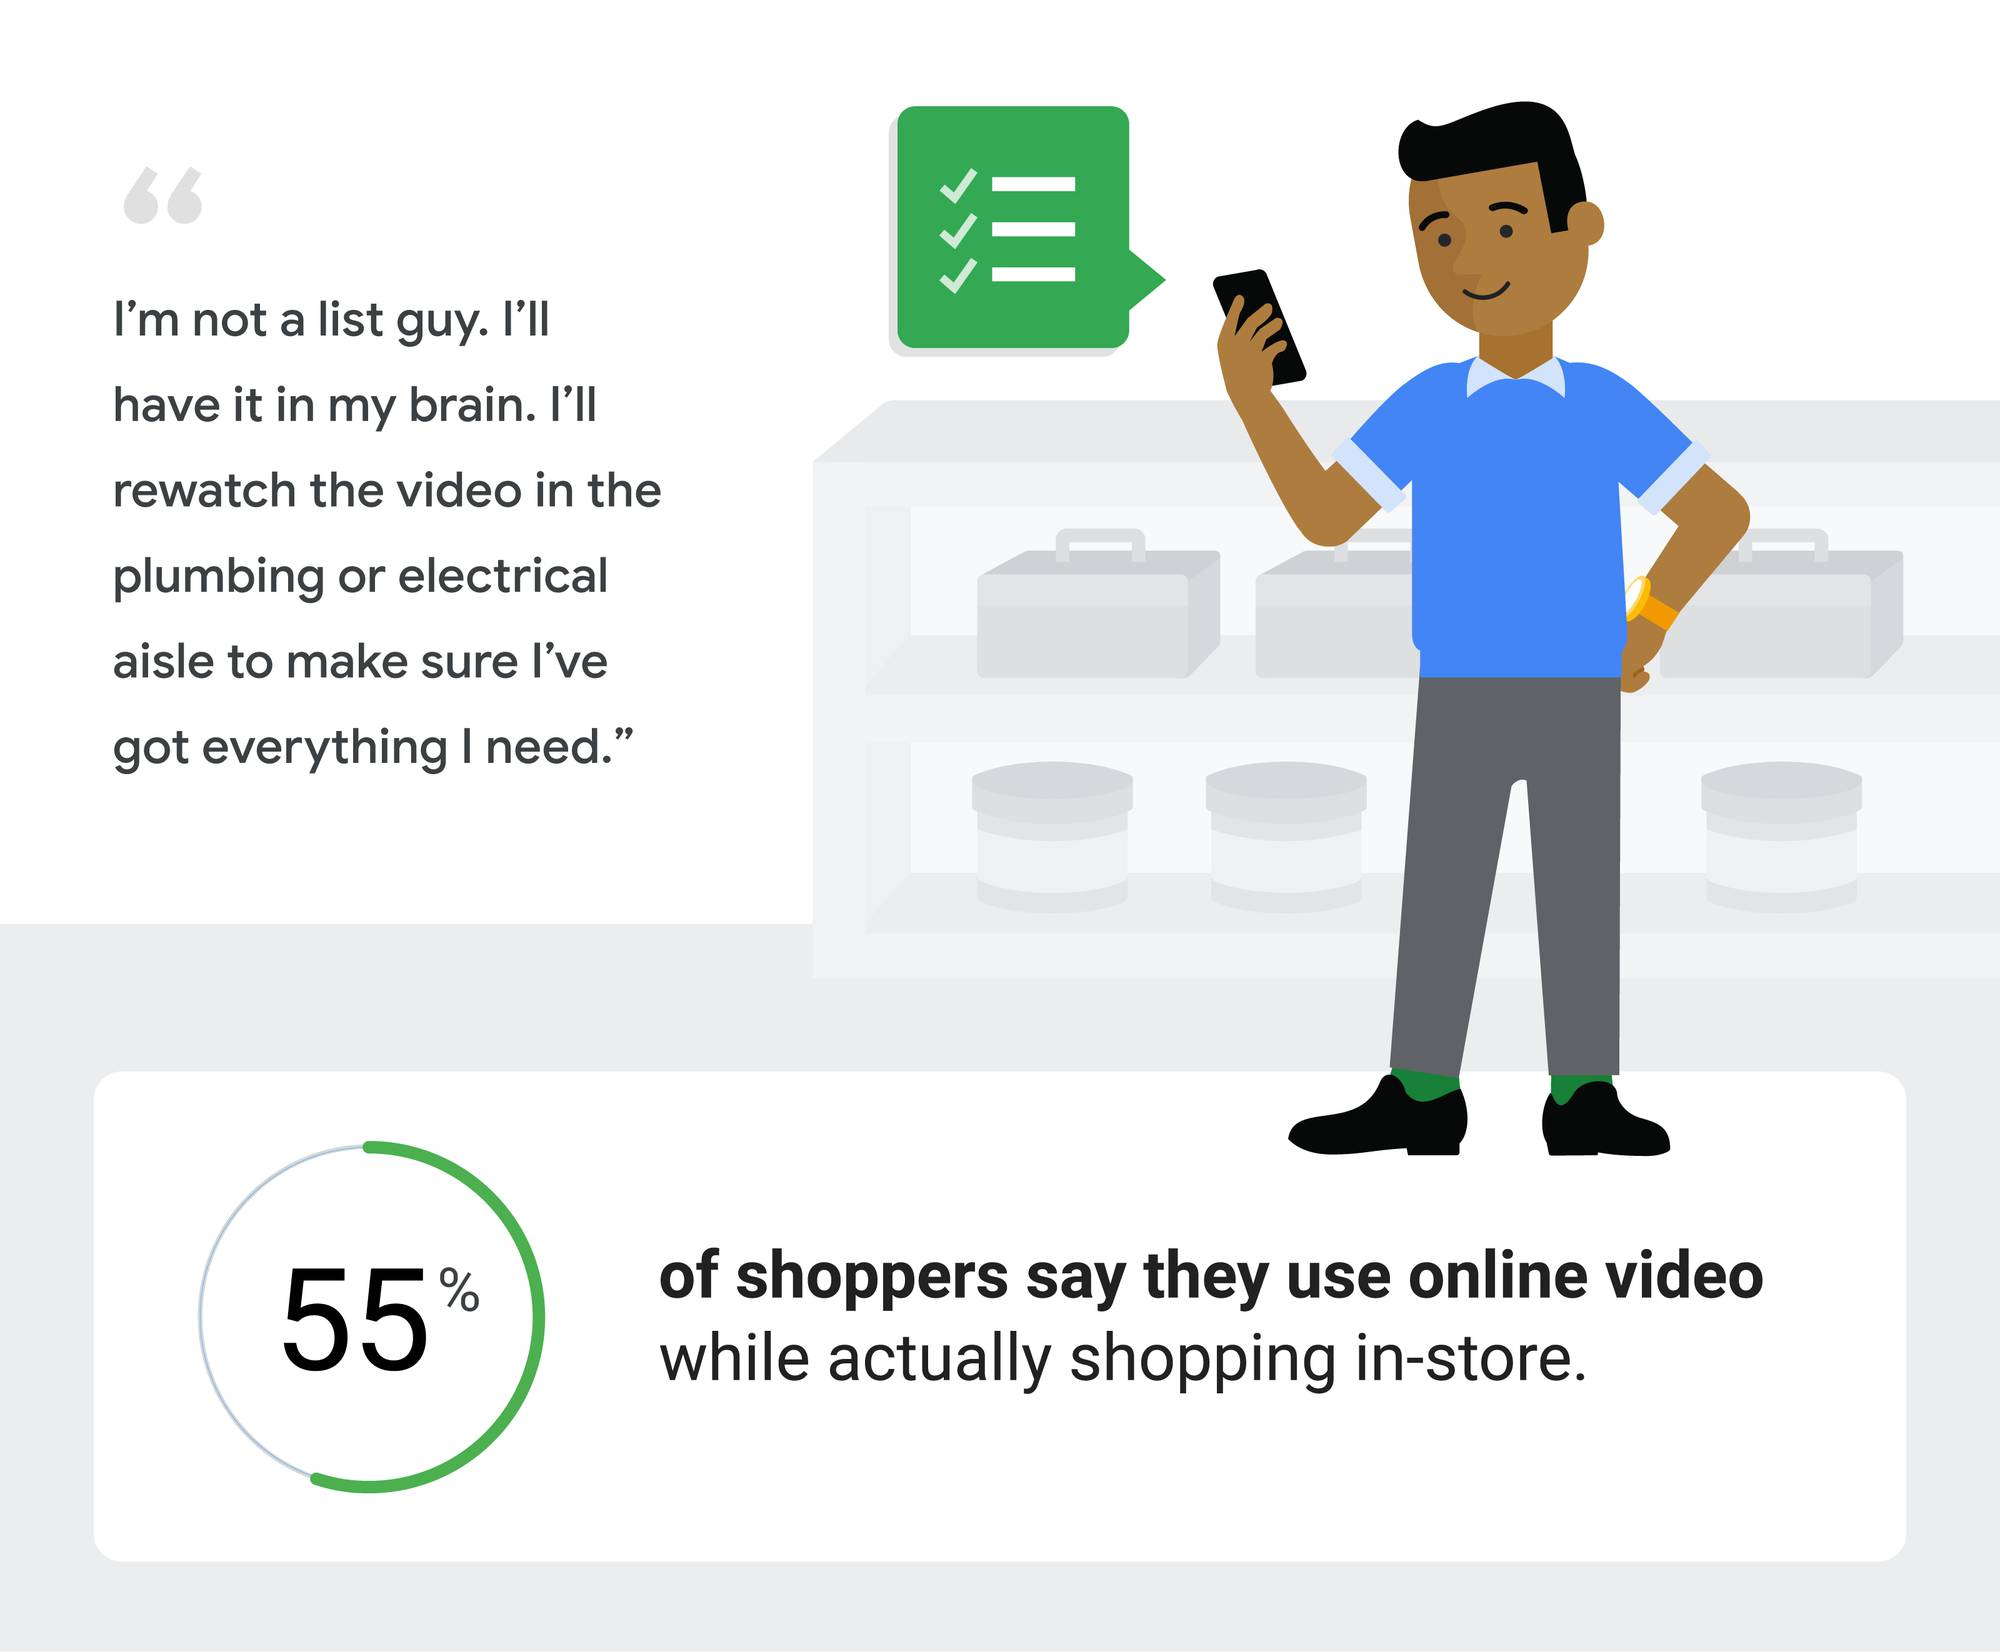 "A man looks at a list on his phone. ""I'm not a list guy. I have it in my brain. I'll watch the video in the plumbing or electrical aisle to make sure I've got everything I need."" 55% of shoppers say they use online video while actually shopping in-store."